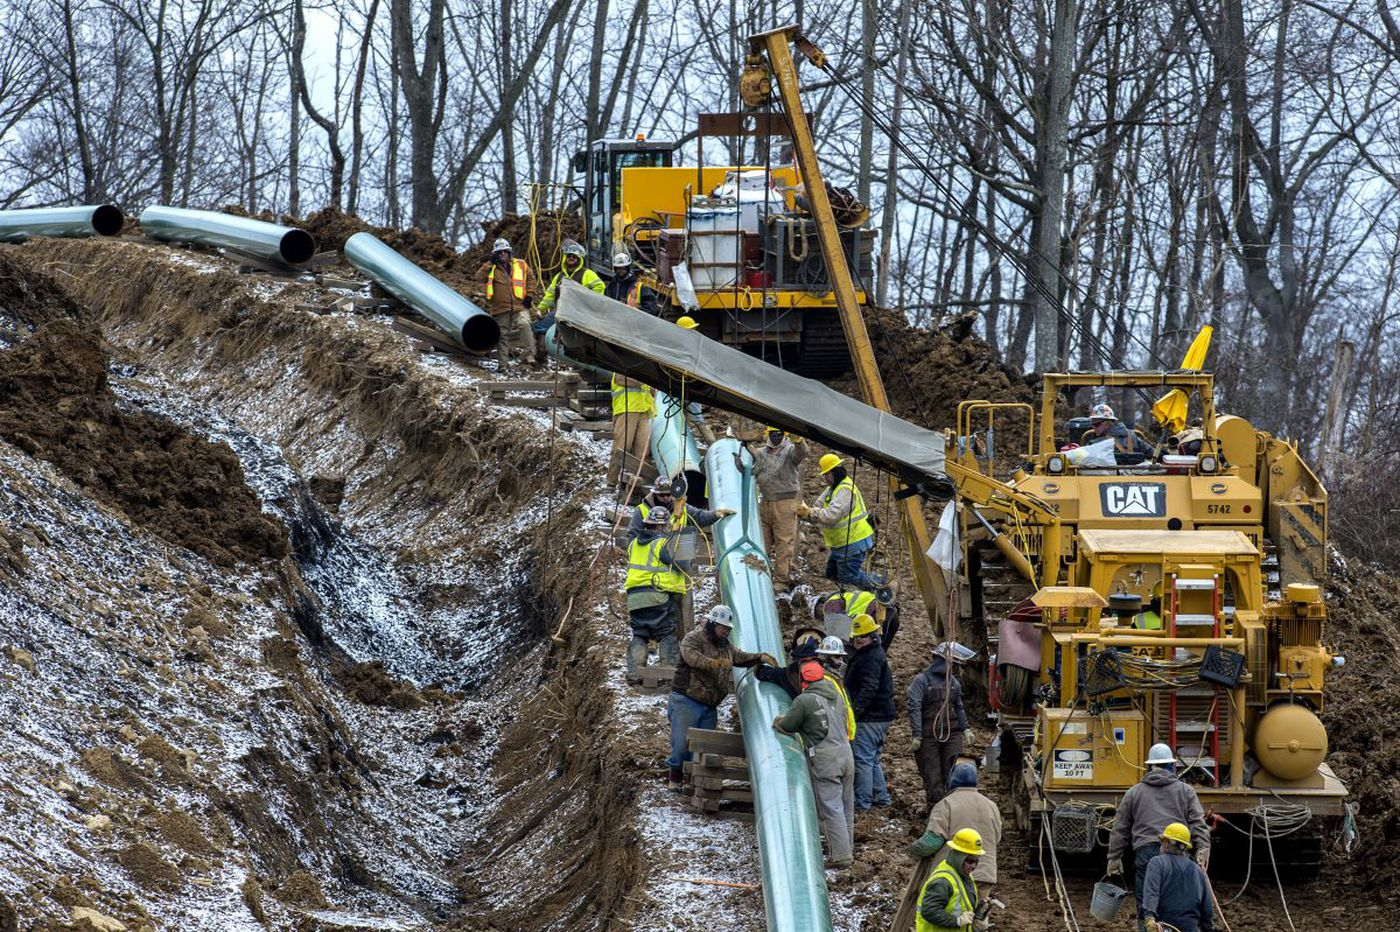 Sunoco says its Mariner pipeline adds $9.1B to economy; activists contend it's 'dubious research'